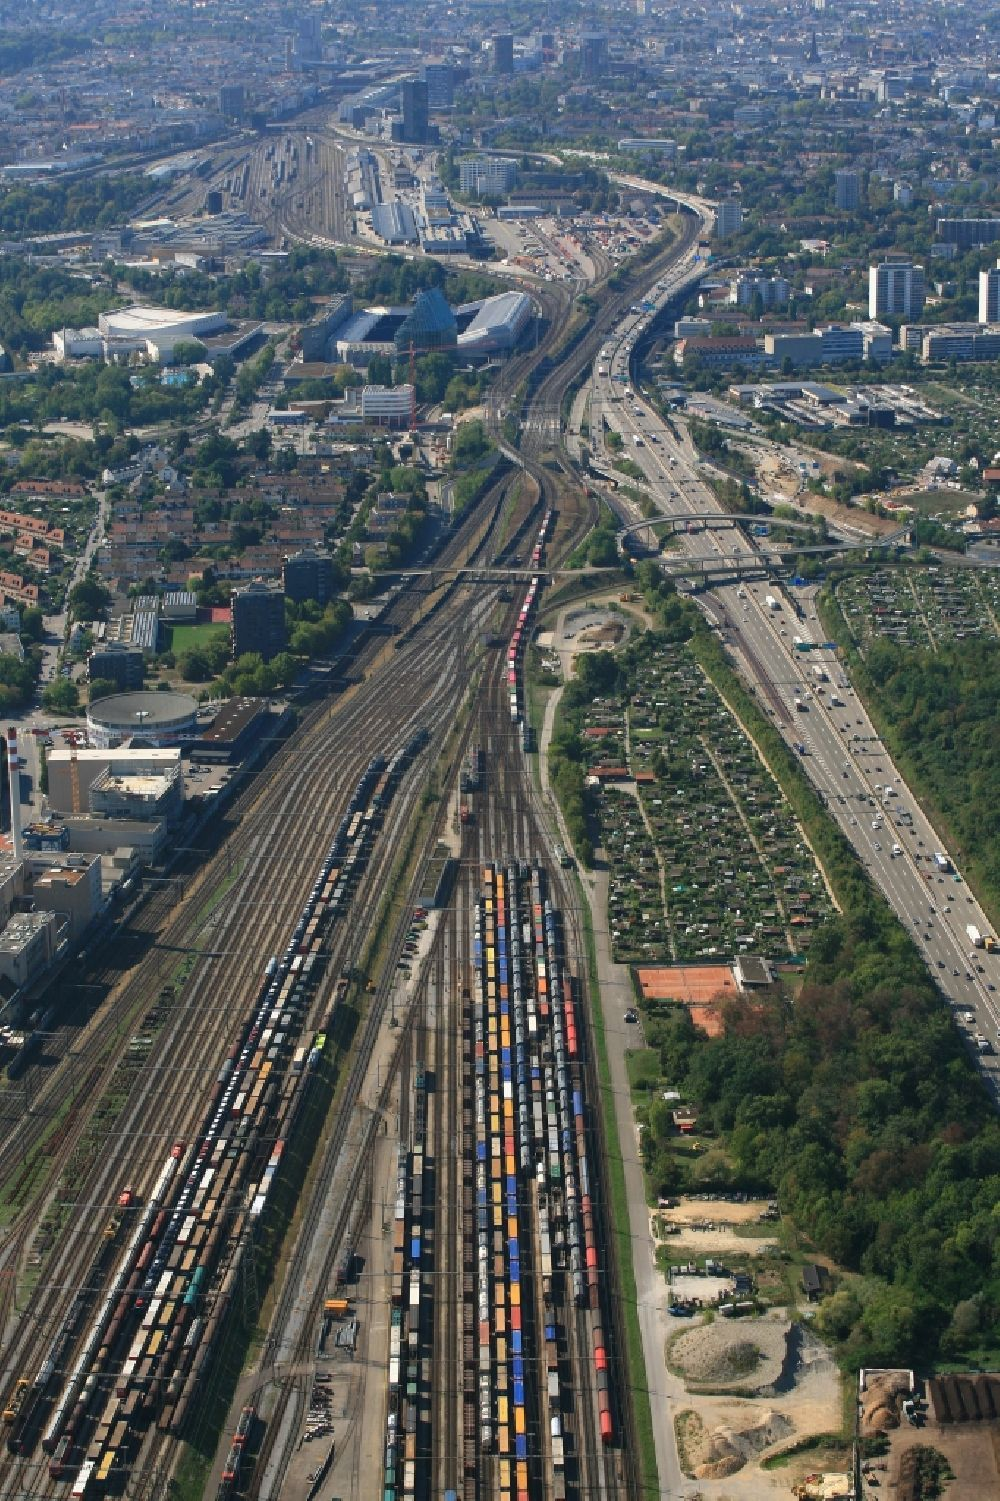 Muttenz from the bird's eye view: Railway tracks and cargo trains in the route network of the Swiss Railway SBB in Muttenz in the canton Basel-Landschaft, Switzerland